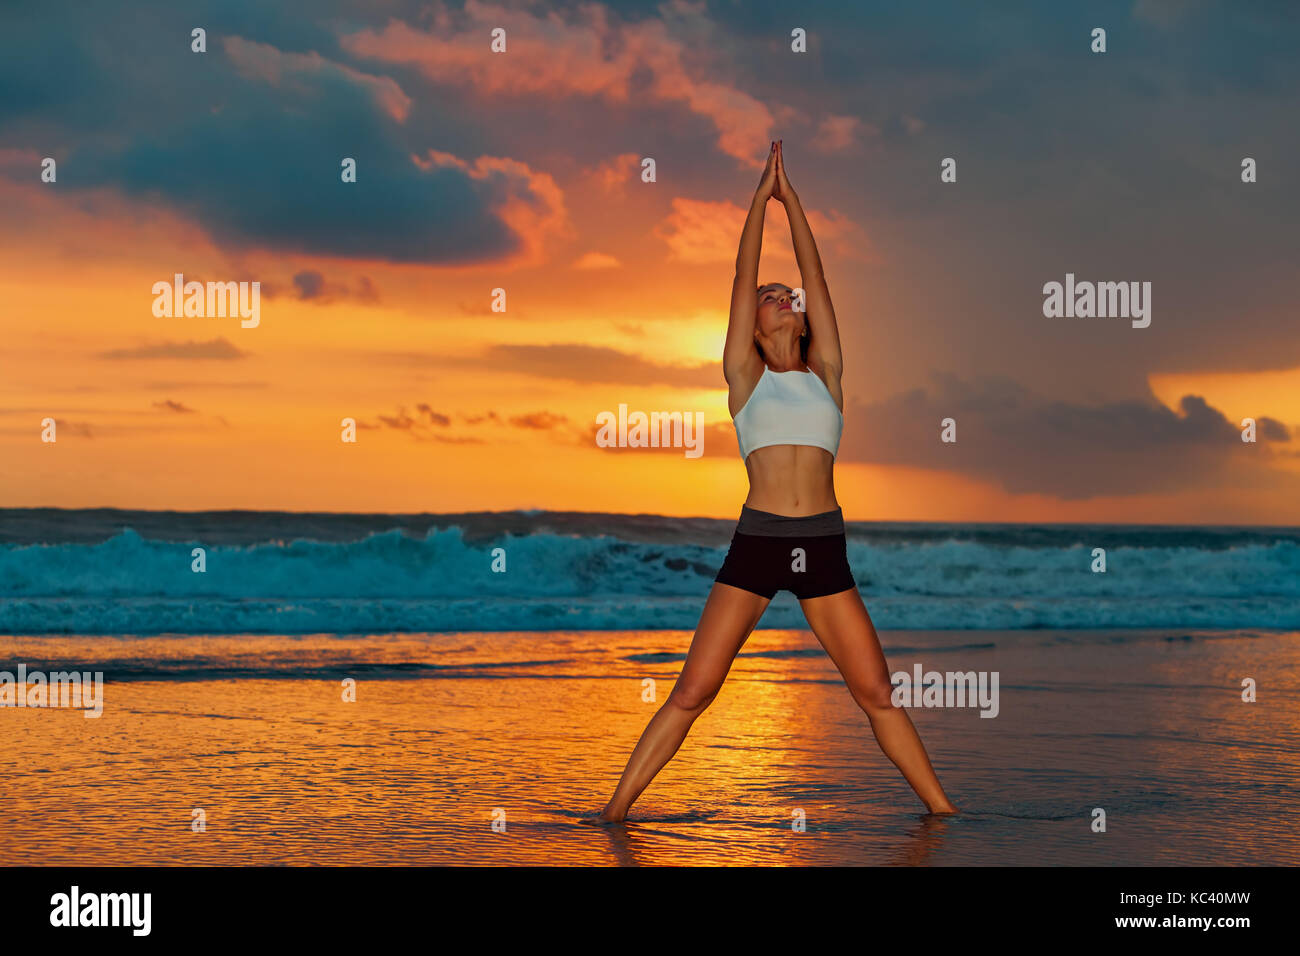 Meditation on sunset sky background. Active woman in yoga pose on sea beach, stretching to keep fit and health. - Stock Image